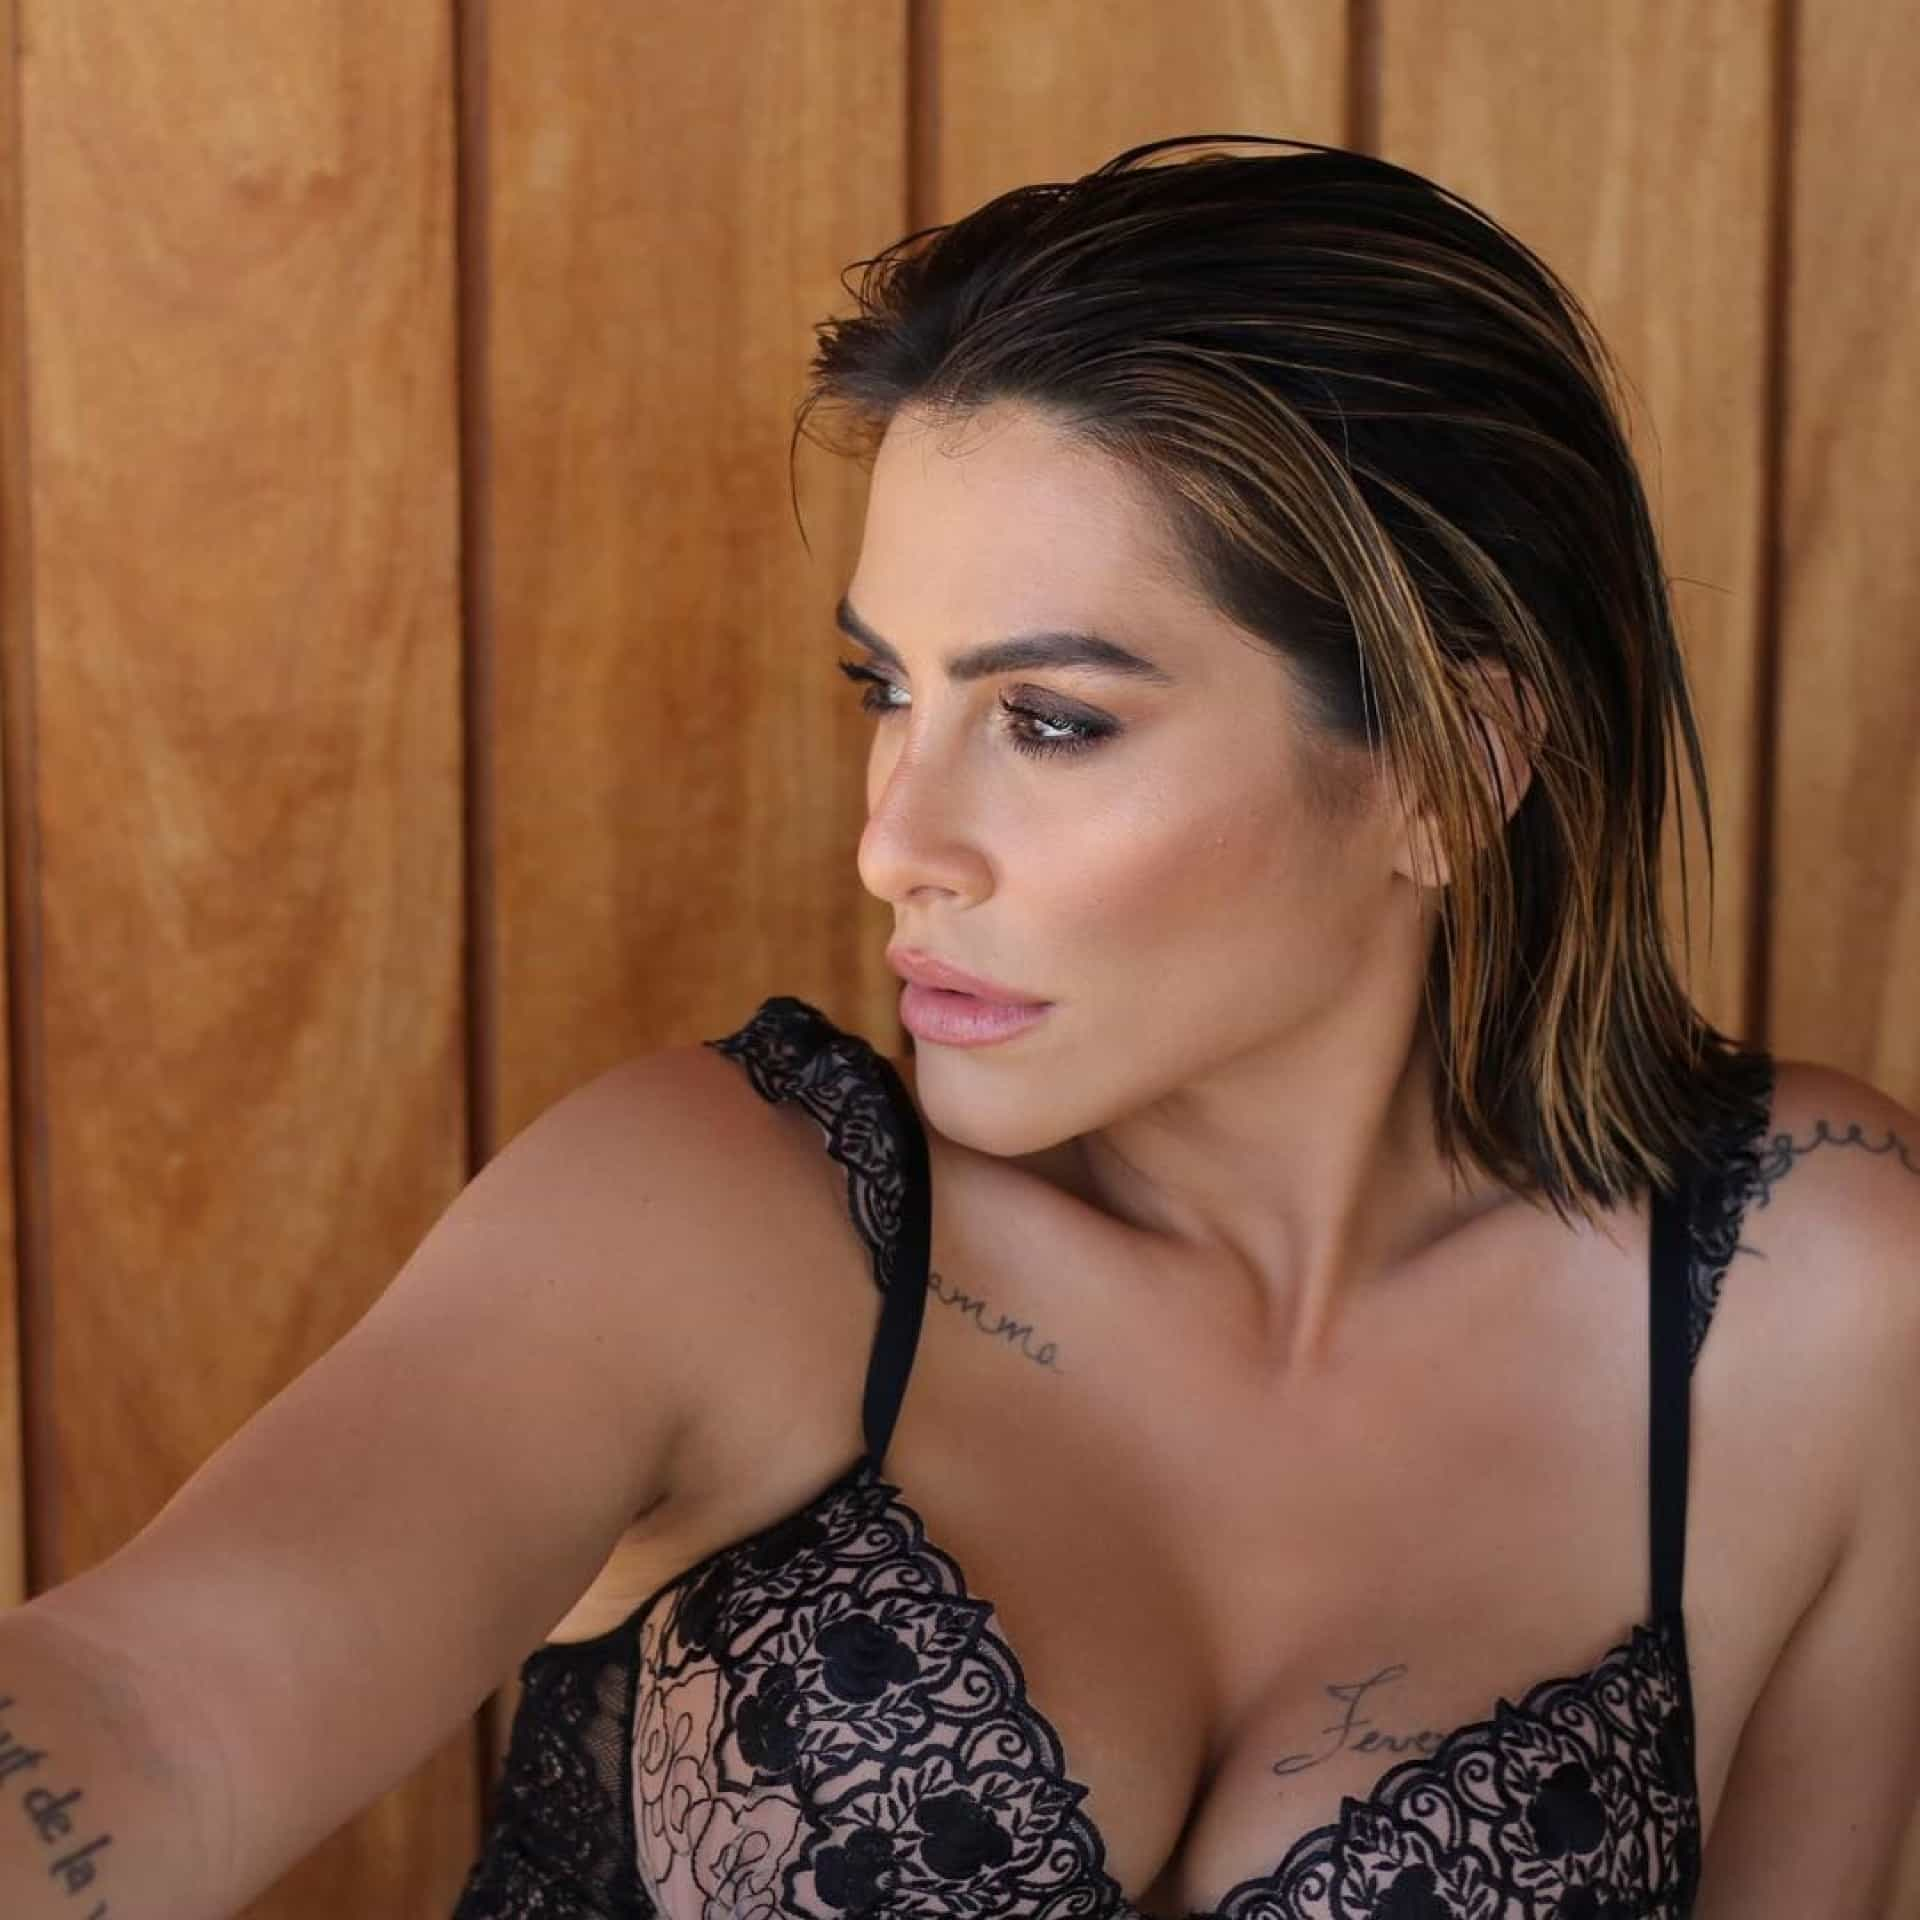 Cleo Pires 'aumenta as temperaturas' com fotos ousadas